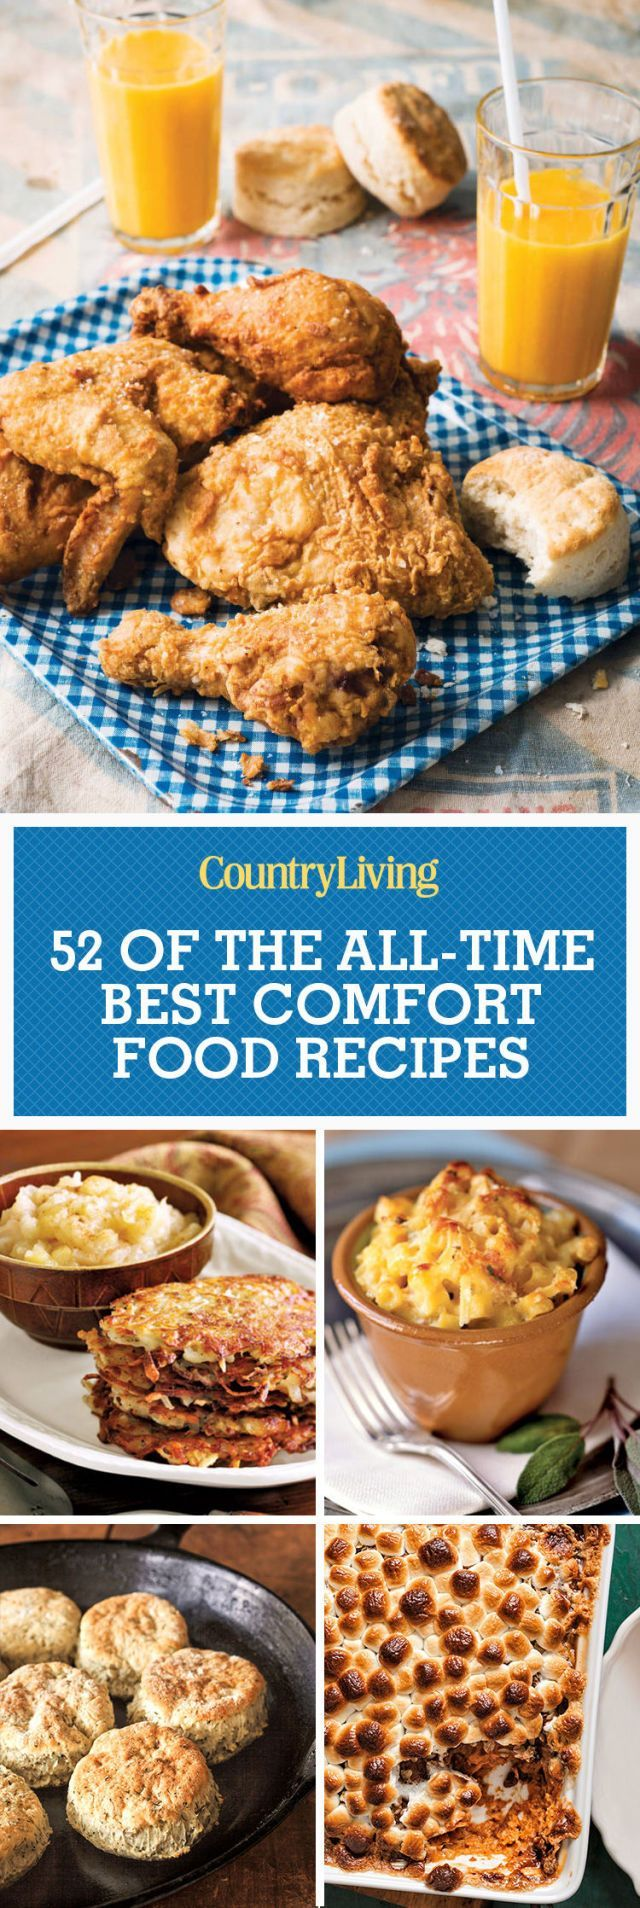 52 of the all time best southern comfort food recipes southern 52 of the all time best southern comfort food recipes forumfinder Image collections